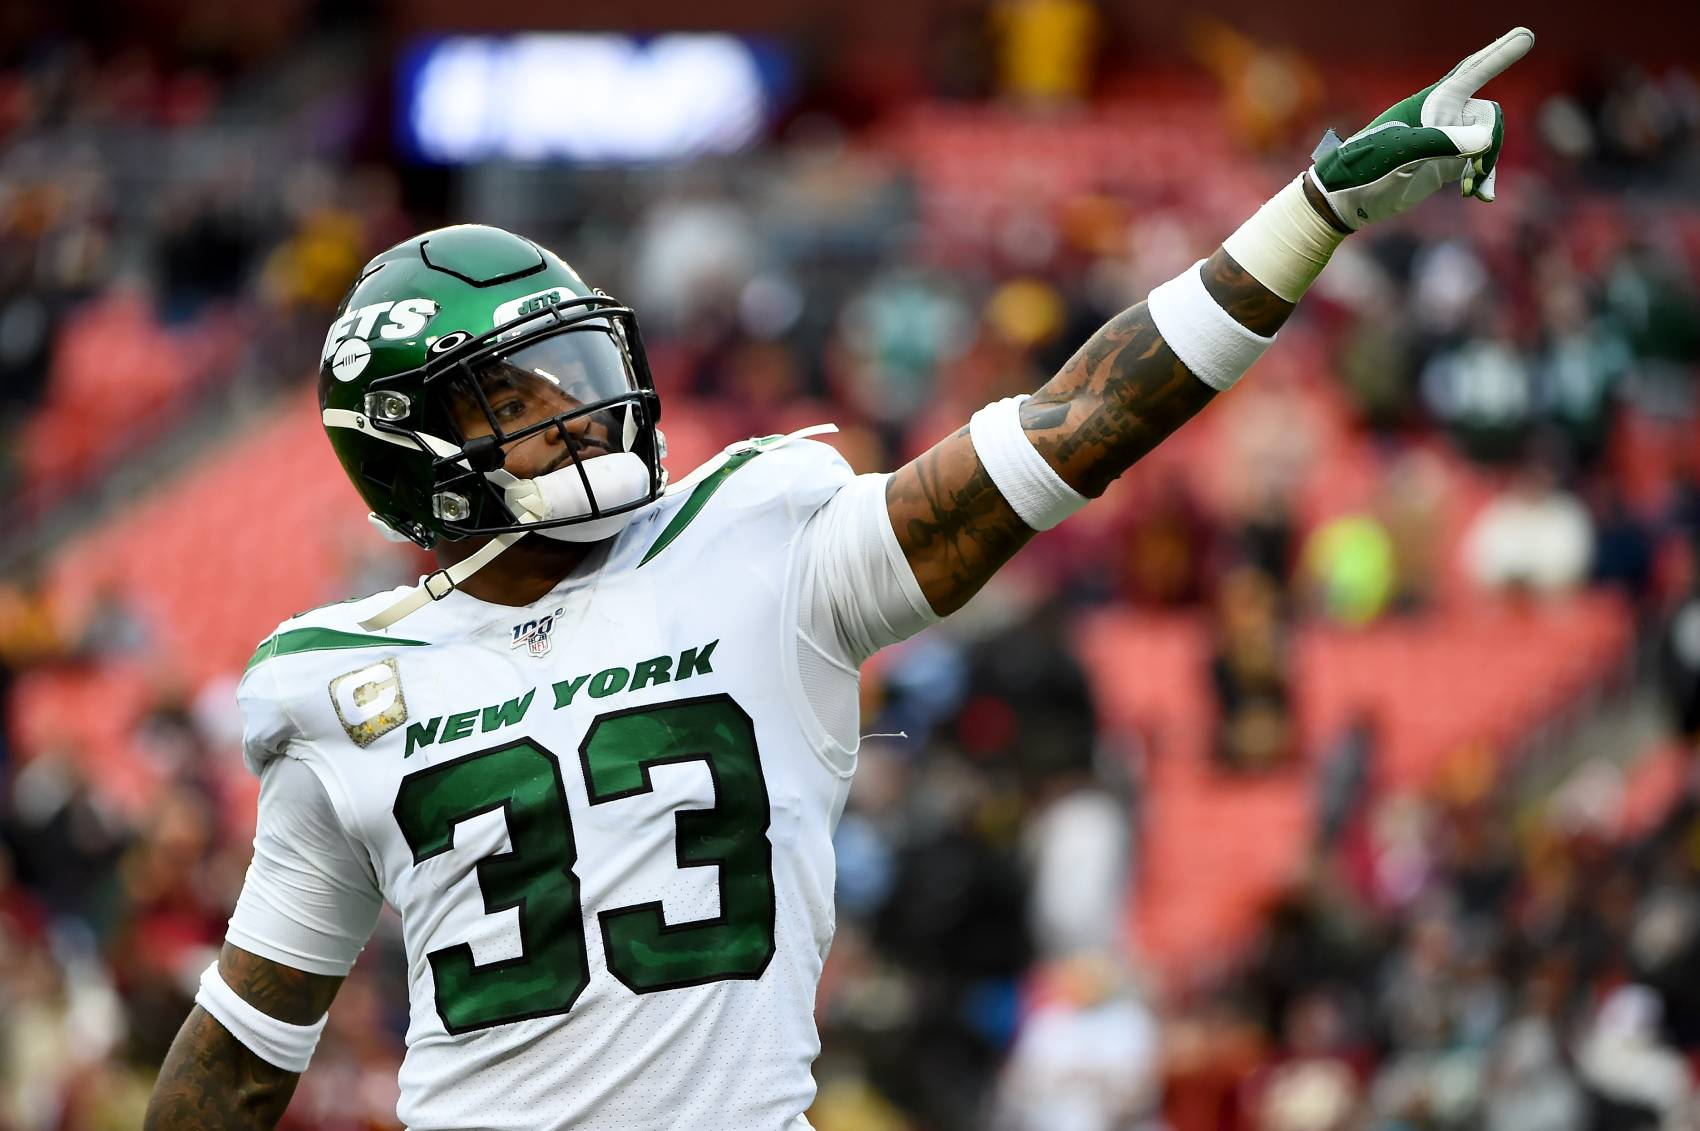 Jets safety Jamal Adams is still trying to force a trade from New York.